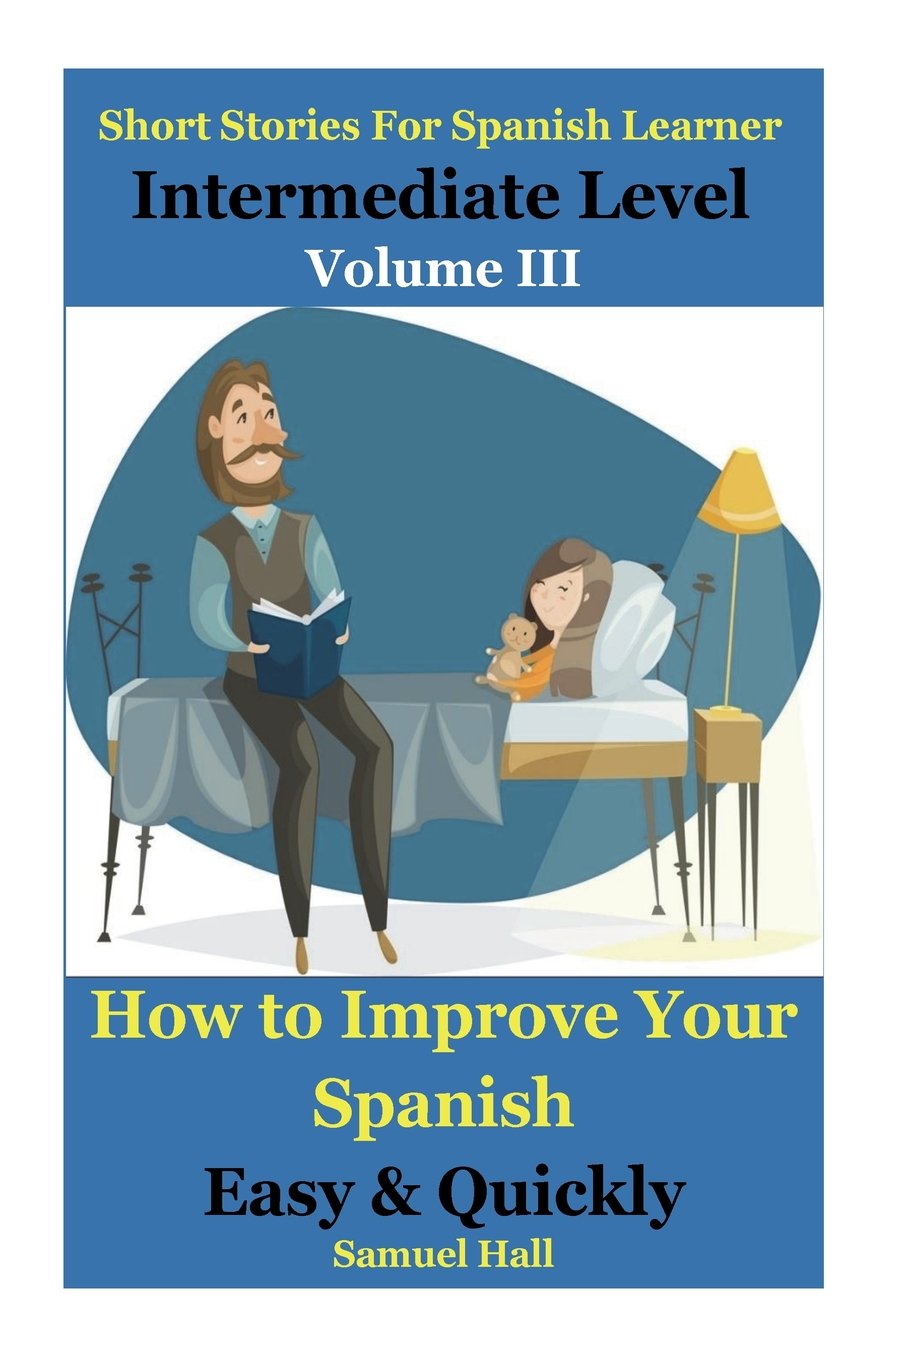 Download Short Stories For Spanish Learner at Intermediate Level: How To Improve Your Spanish Easy and Quickly (Learning Spanish) (Volume 3) pdf